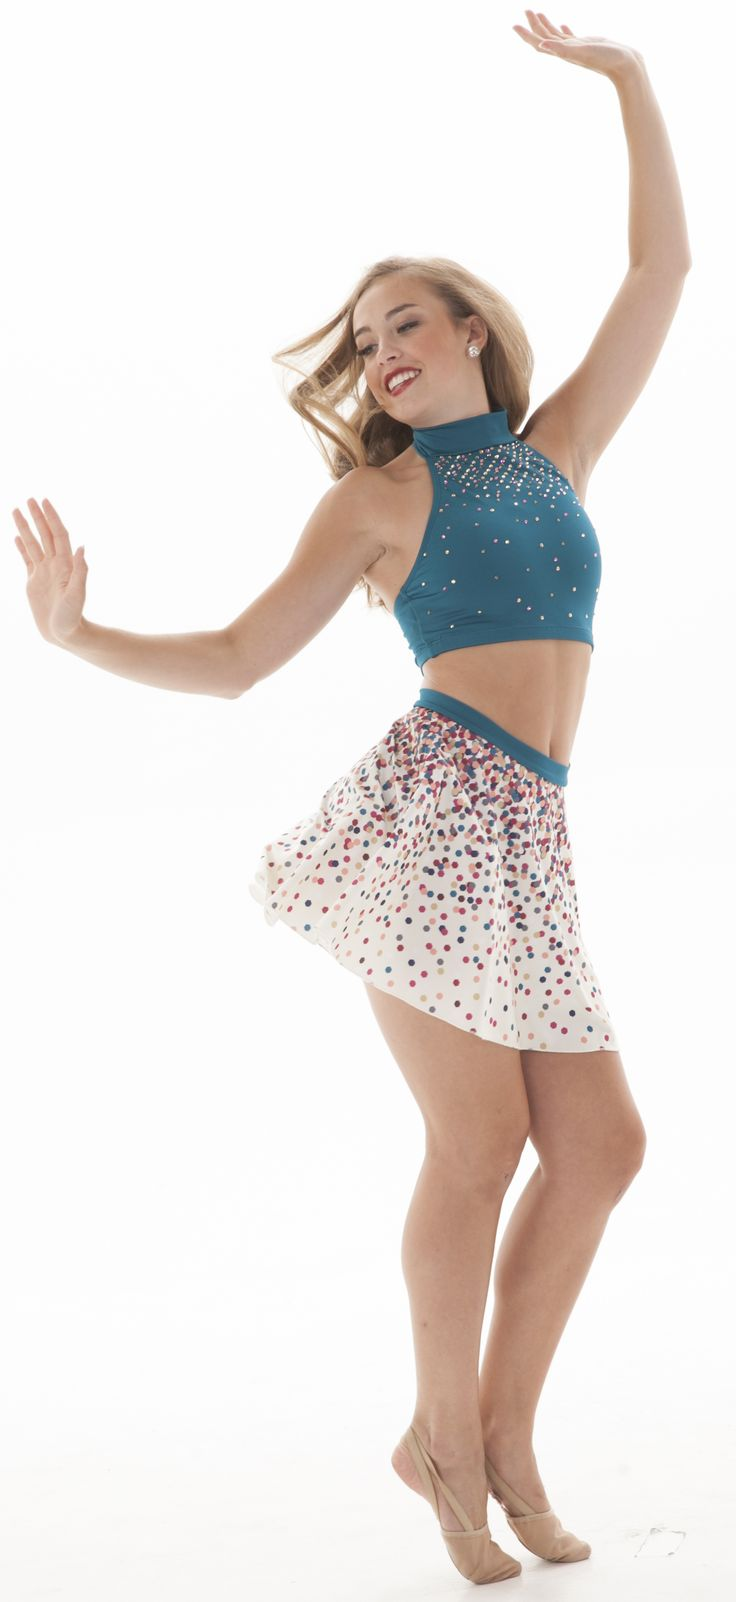 Sublimated Confetti print circle skirt- fun and girly! Perfect for a fun tap or jazz costume